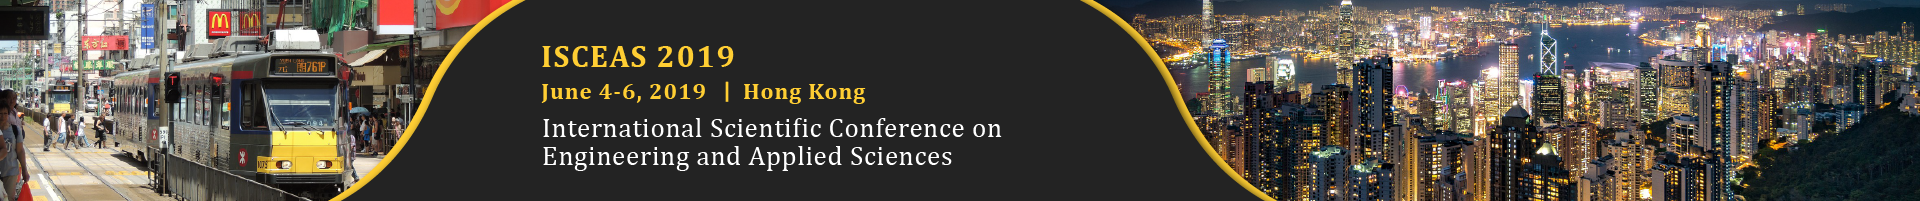 ISCEAS 2019  International  Scientific Conference on Engineering and Applied Sciences, Hong Kong, China